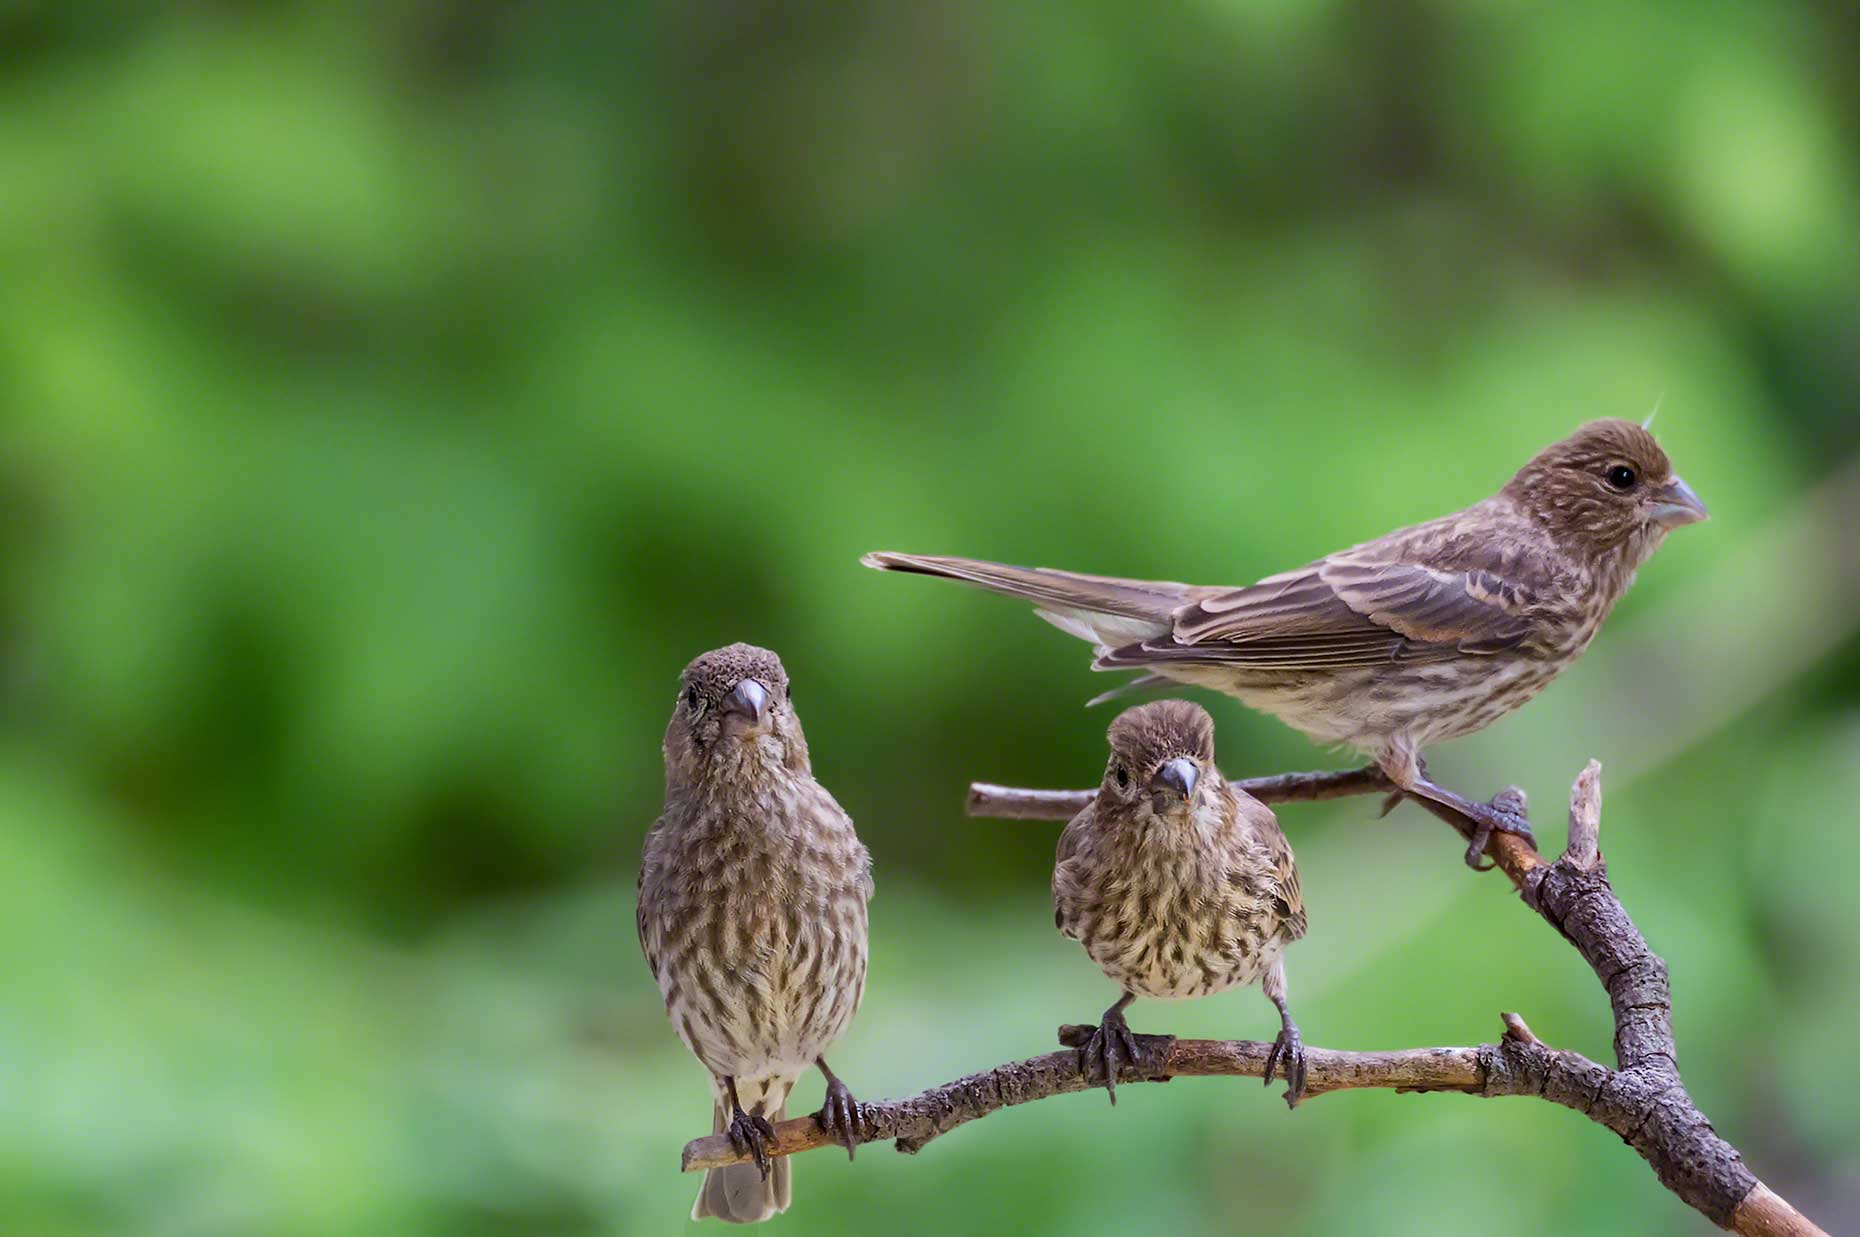 FritzImages | Travel and Outdoor Digital Images | image name = FI 20140730 777 NY Summer Birds Sparrows